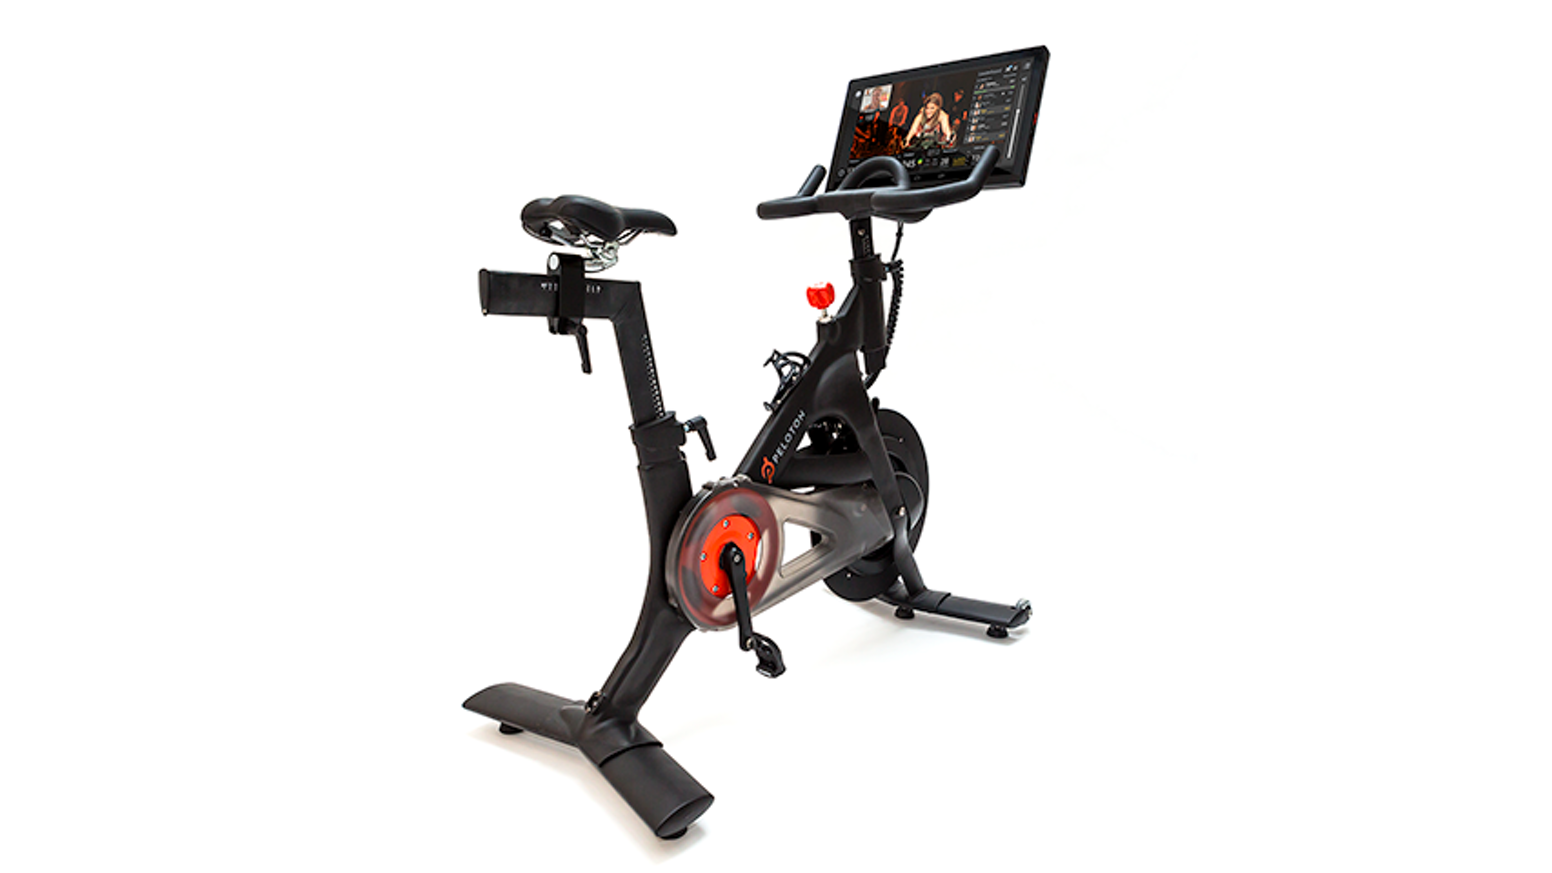 The Peloton Bike: Bring Home the Studio Cycling Experience